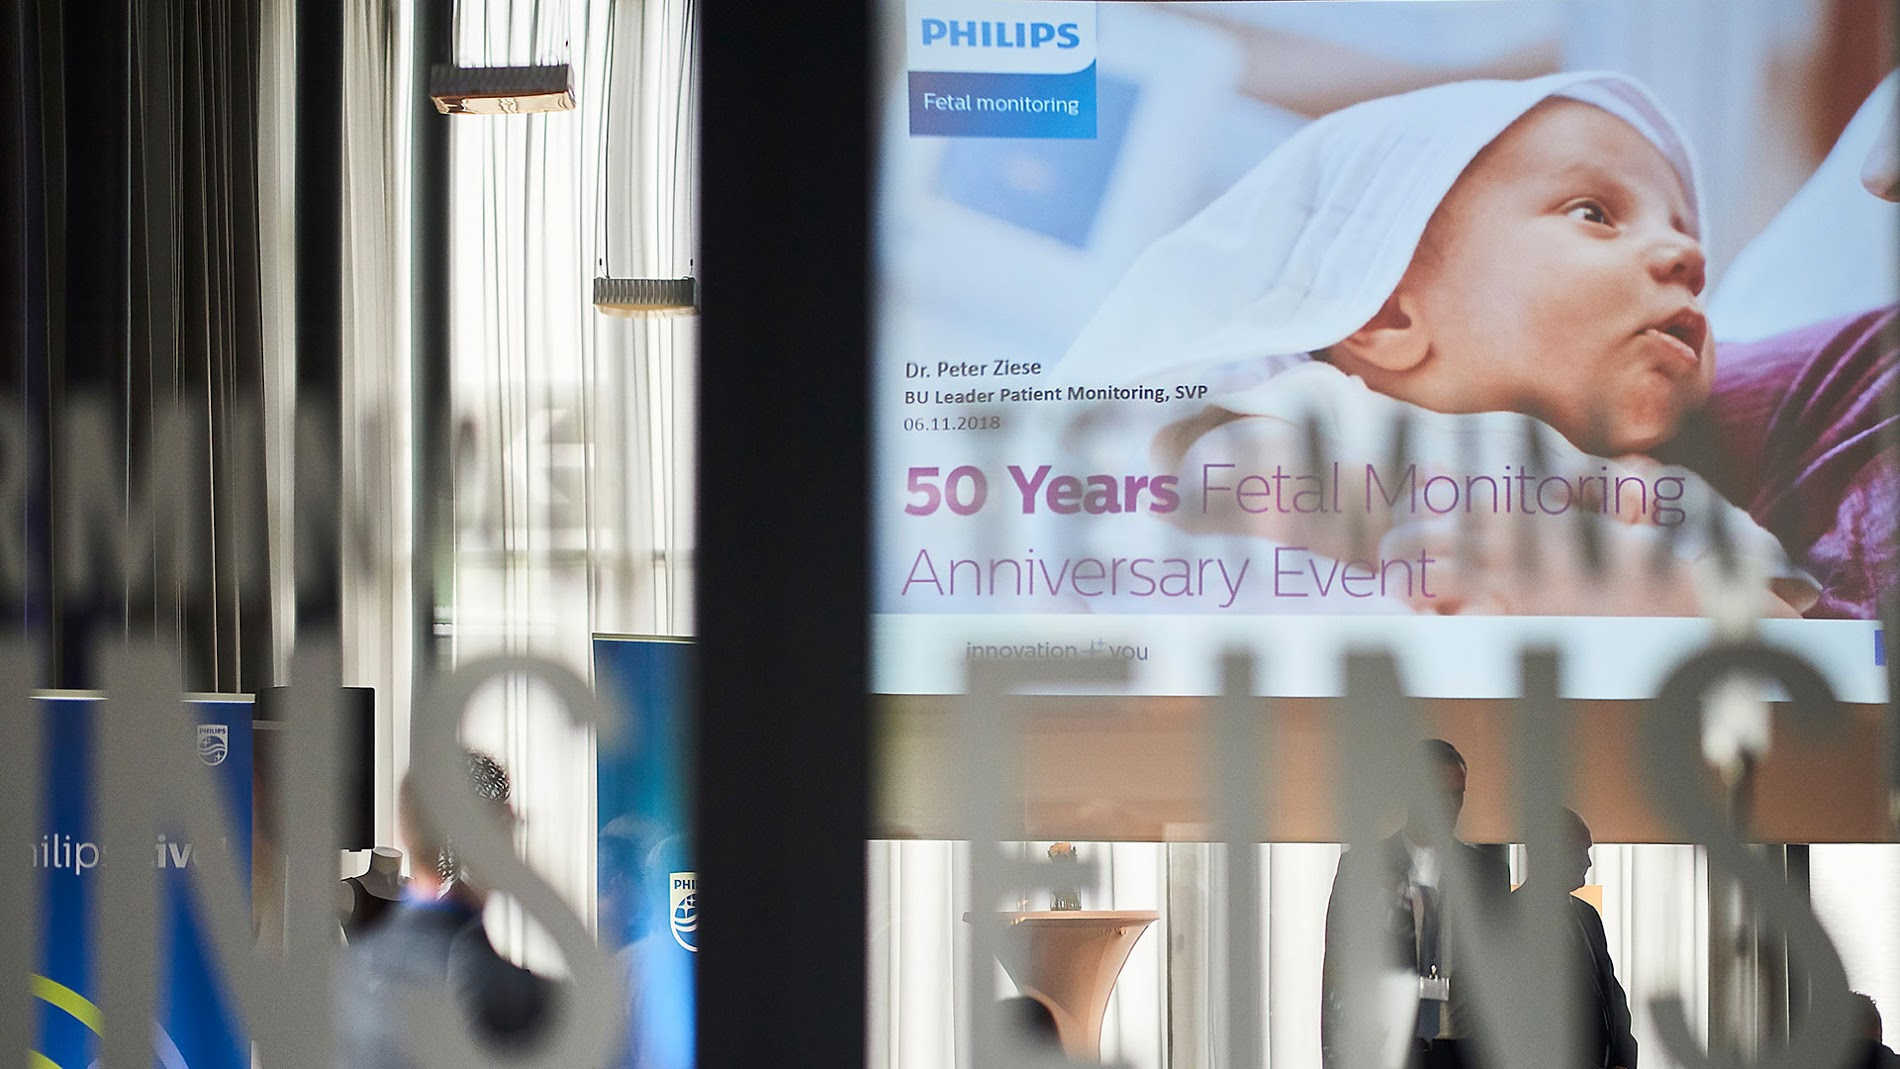 PHILIPS 50 YEARS FETAL MONITORING